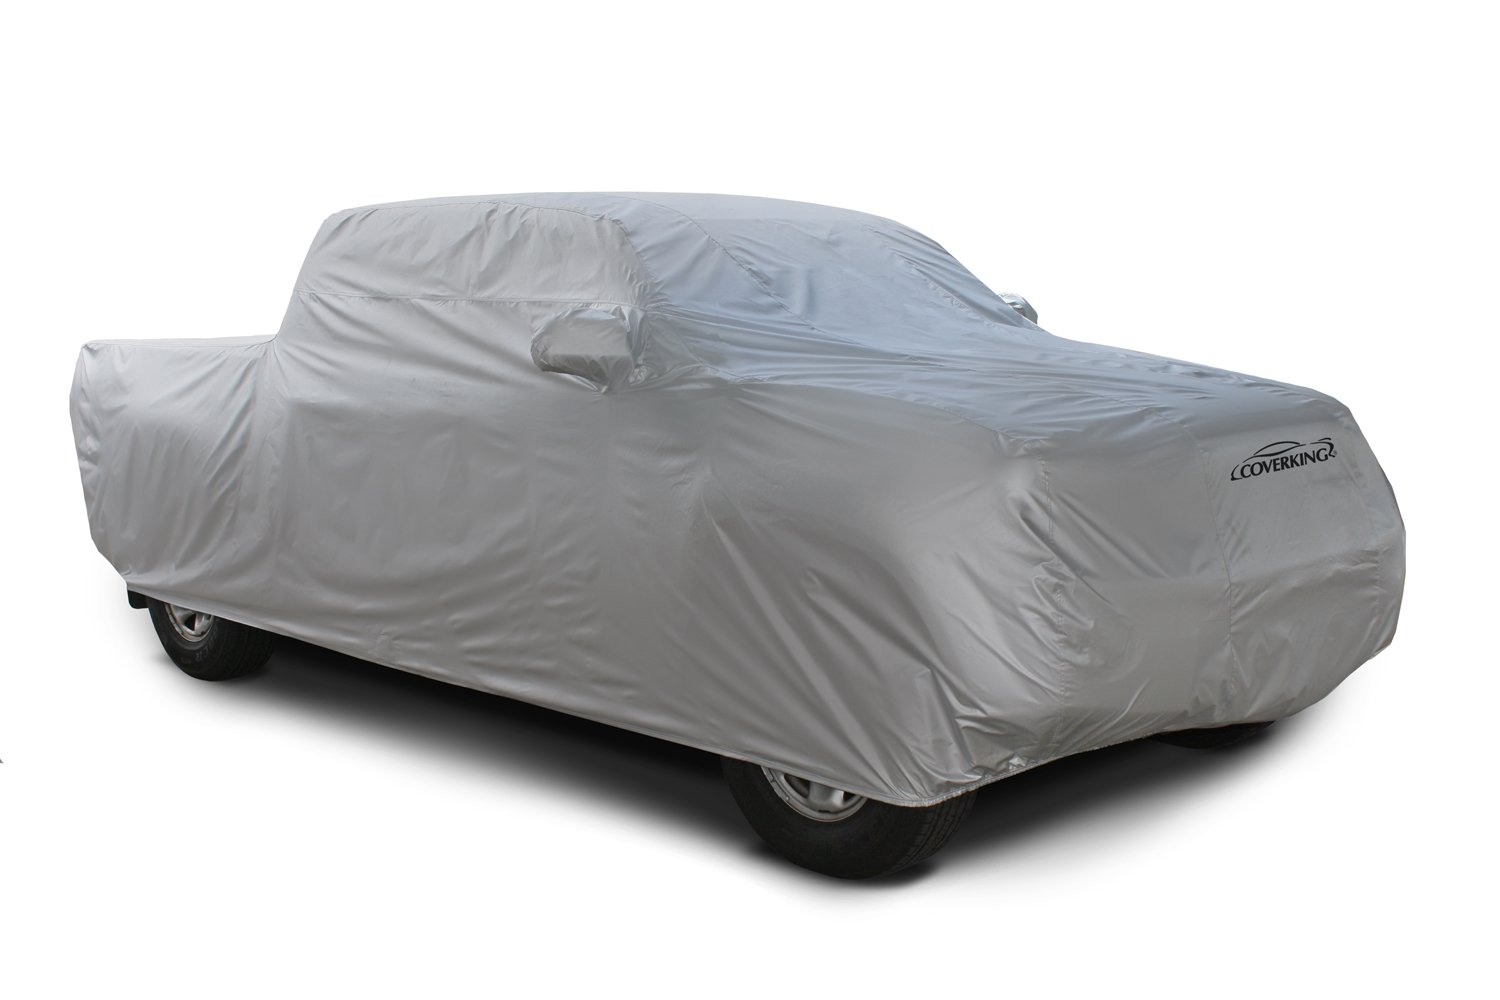 Amazon.com: Coverking Custom Car Cover for Select Chevrolet S10 Models -  Silverguard (Silver): Automotive